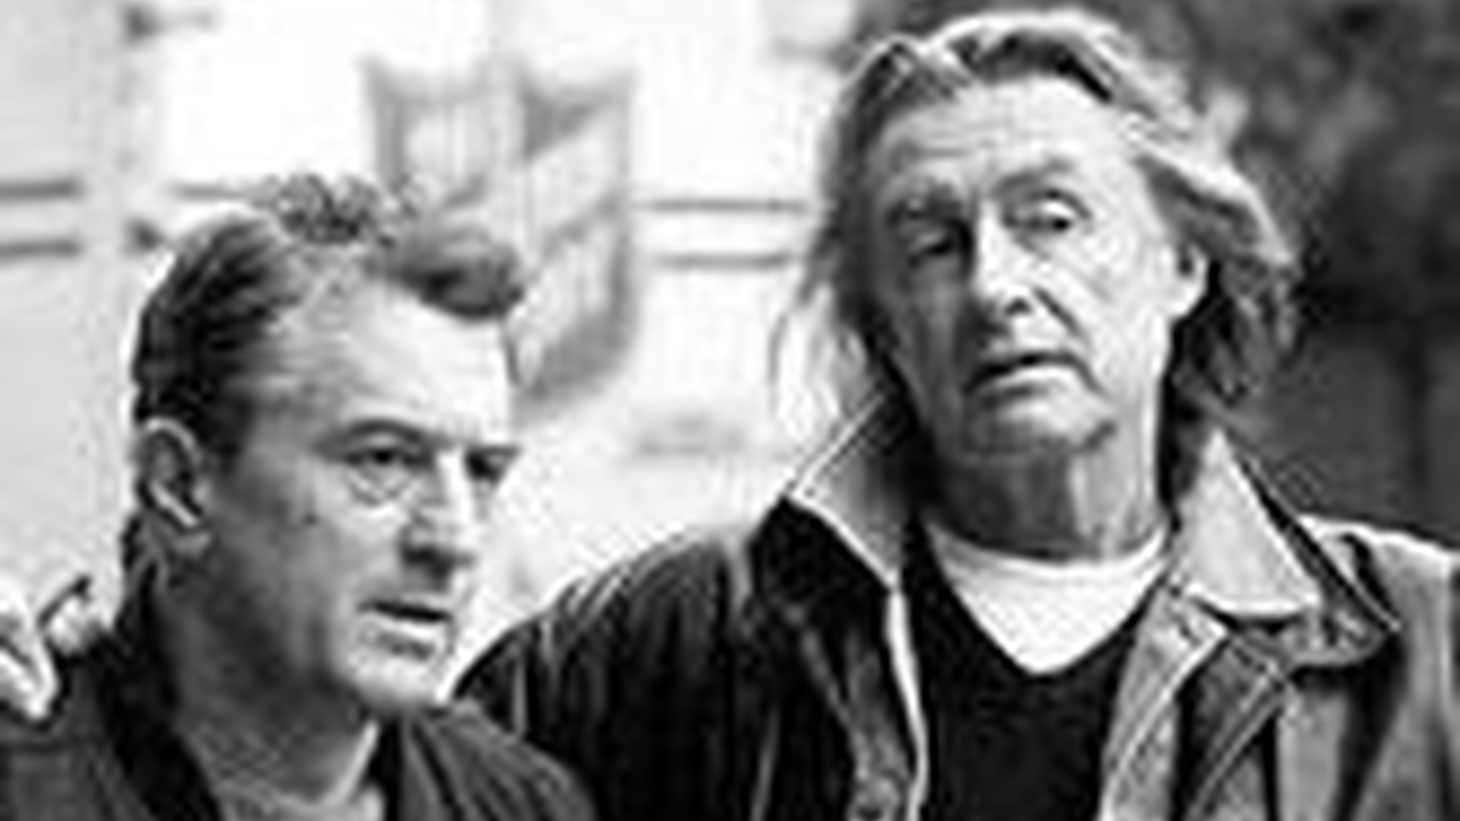 Elvis Mitchell talks to filmmaker Joel Schumacher, whose many films include Flatliners, Batman and Robin, Tigerland, Phone Booth and his new film version of The Phantom of the Opera.